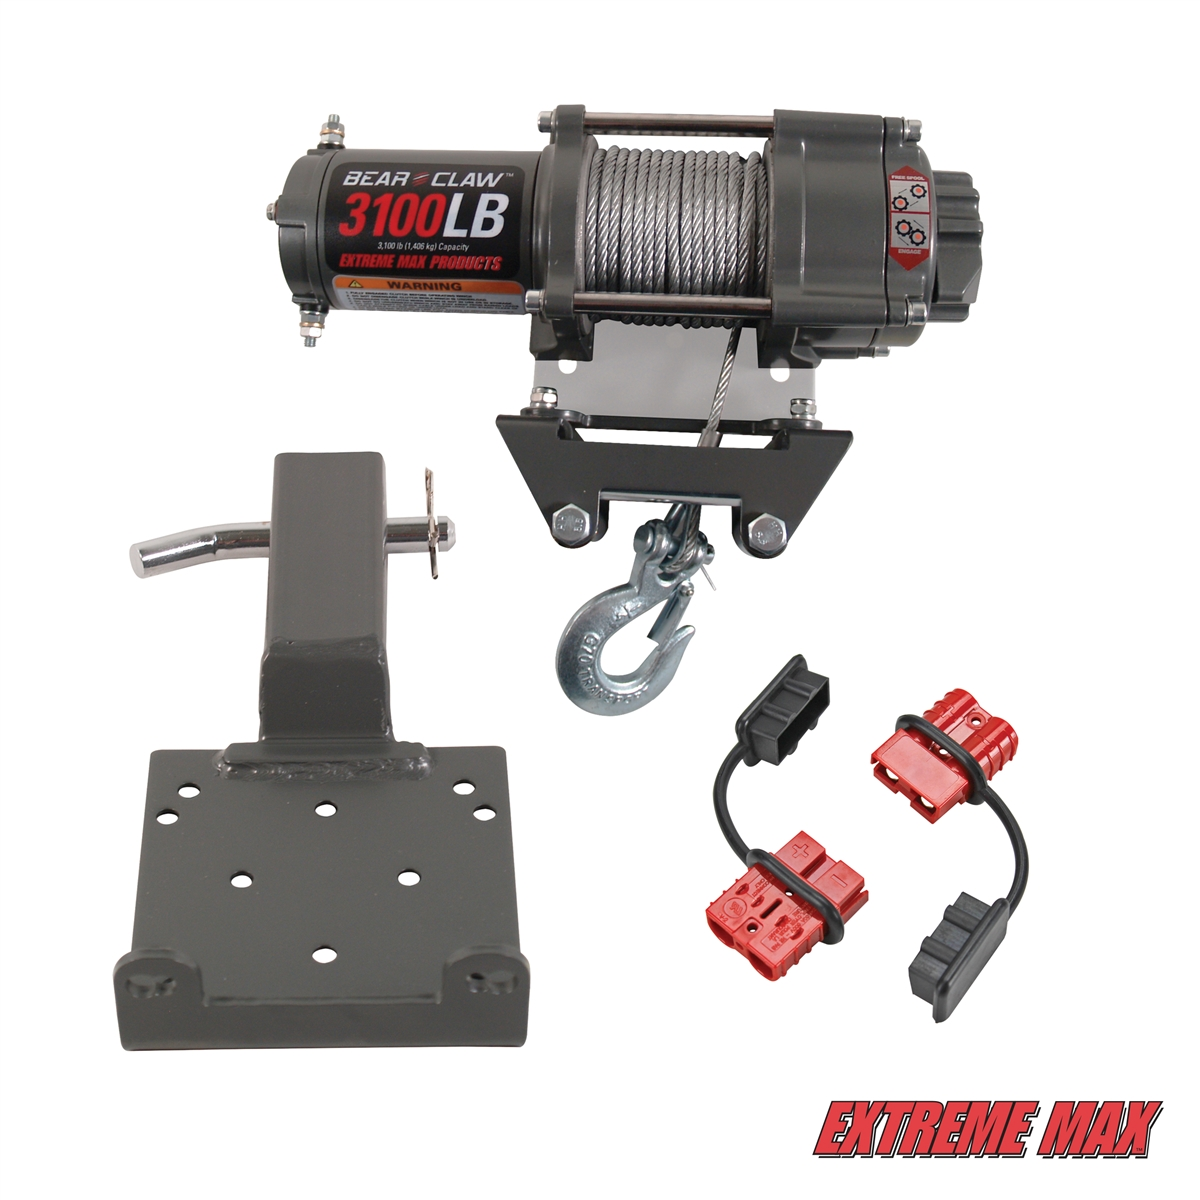 5600.3198 2 extreme max 5600 3198 complete 3100 lb winch & quick release kit bear claw winch wiring diagram at virtualis.co